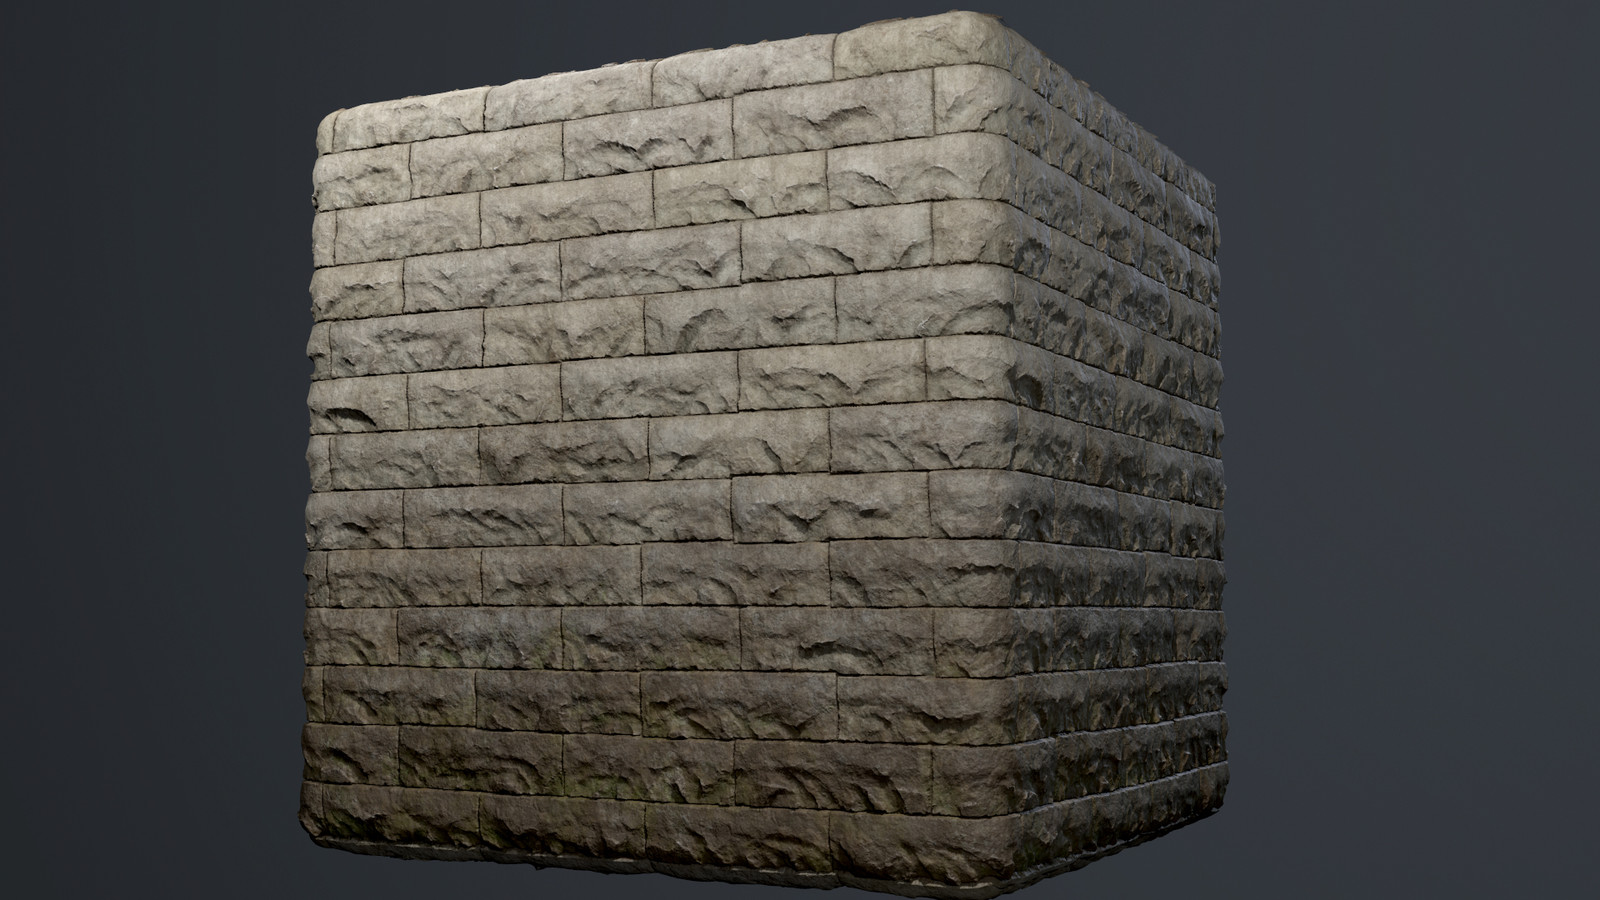 Since this texture would only be used on the first floor of building, I added a directional dirt gradient to help transition the texture into the ground.